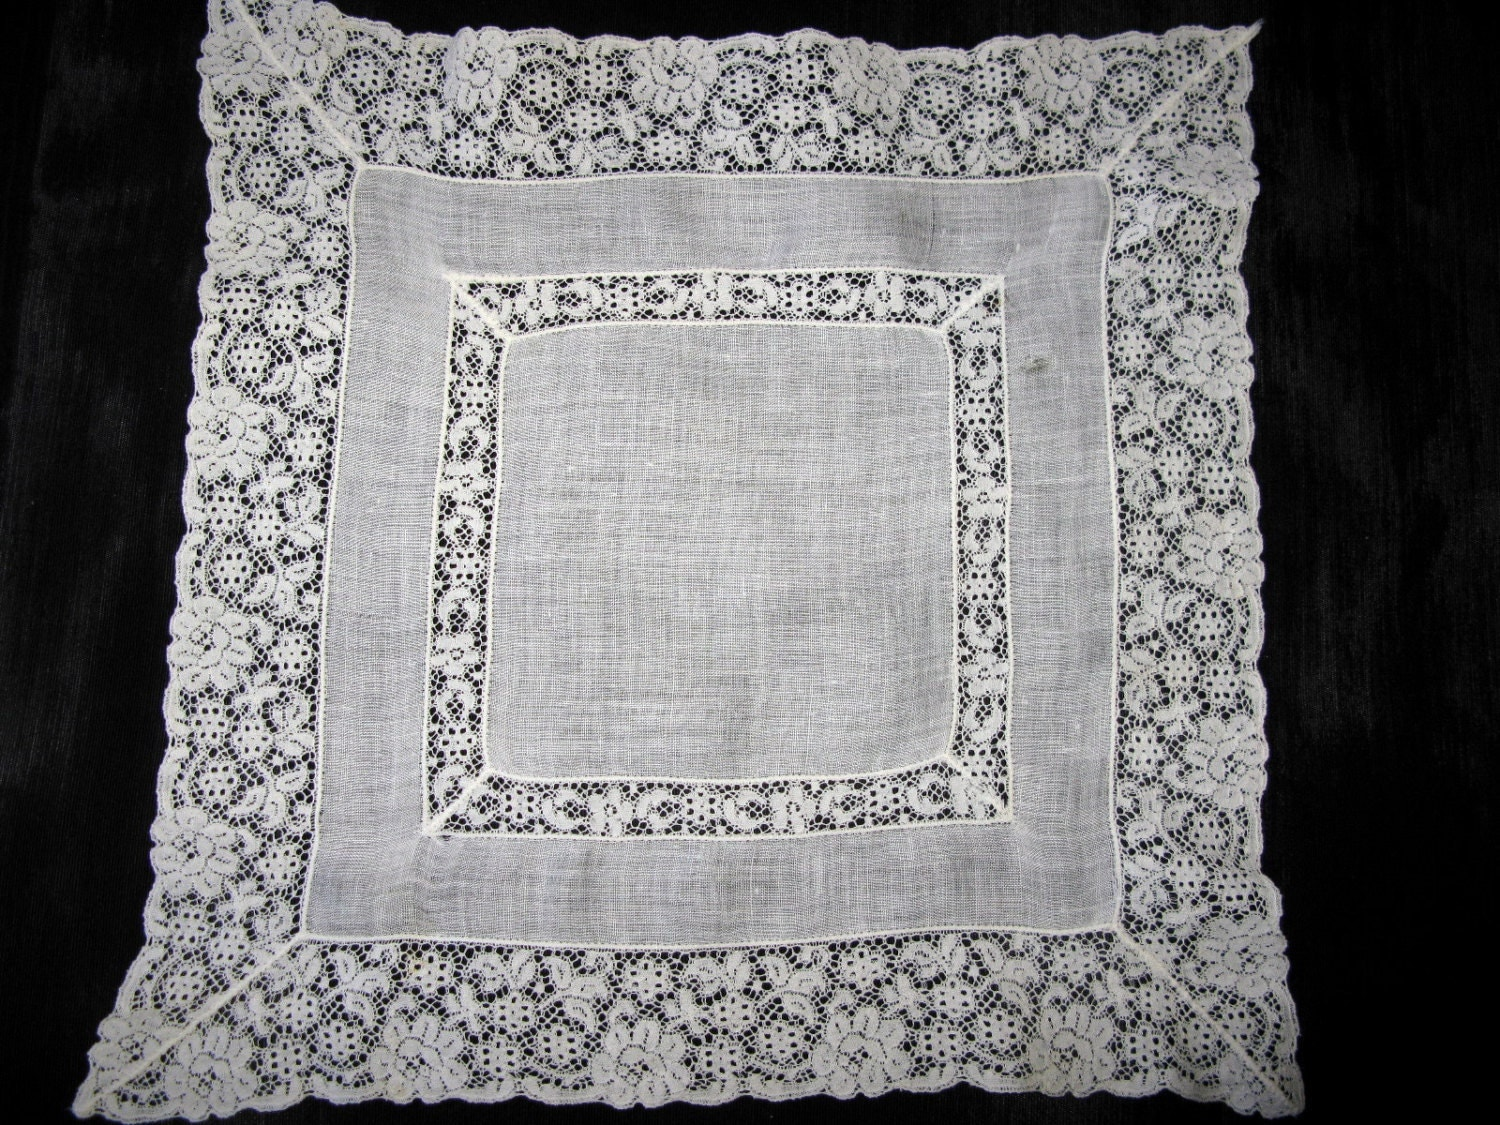 Lace Handkerchief Antique Bridal Handkerchief Wedding